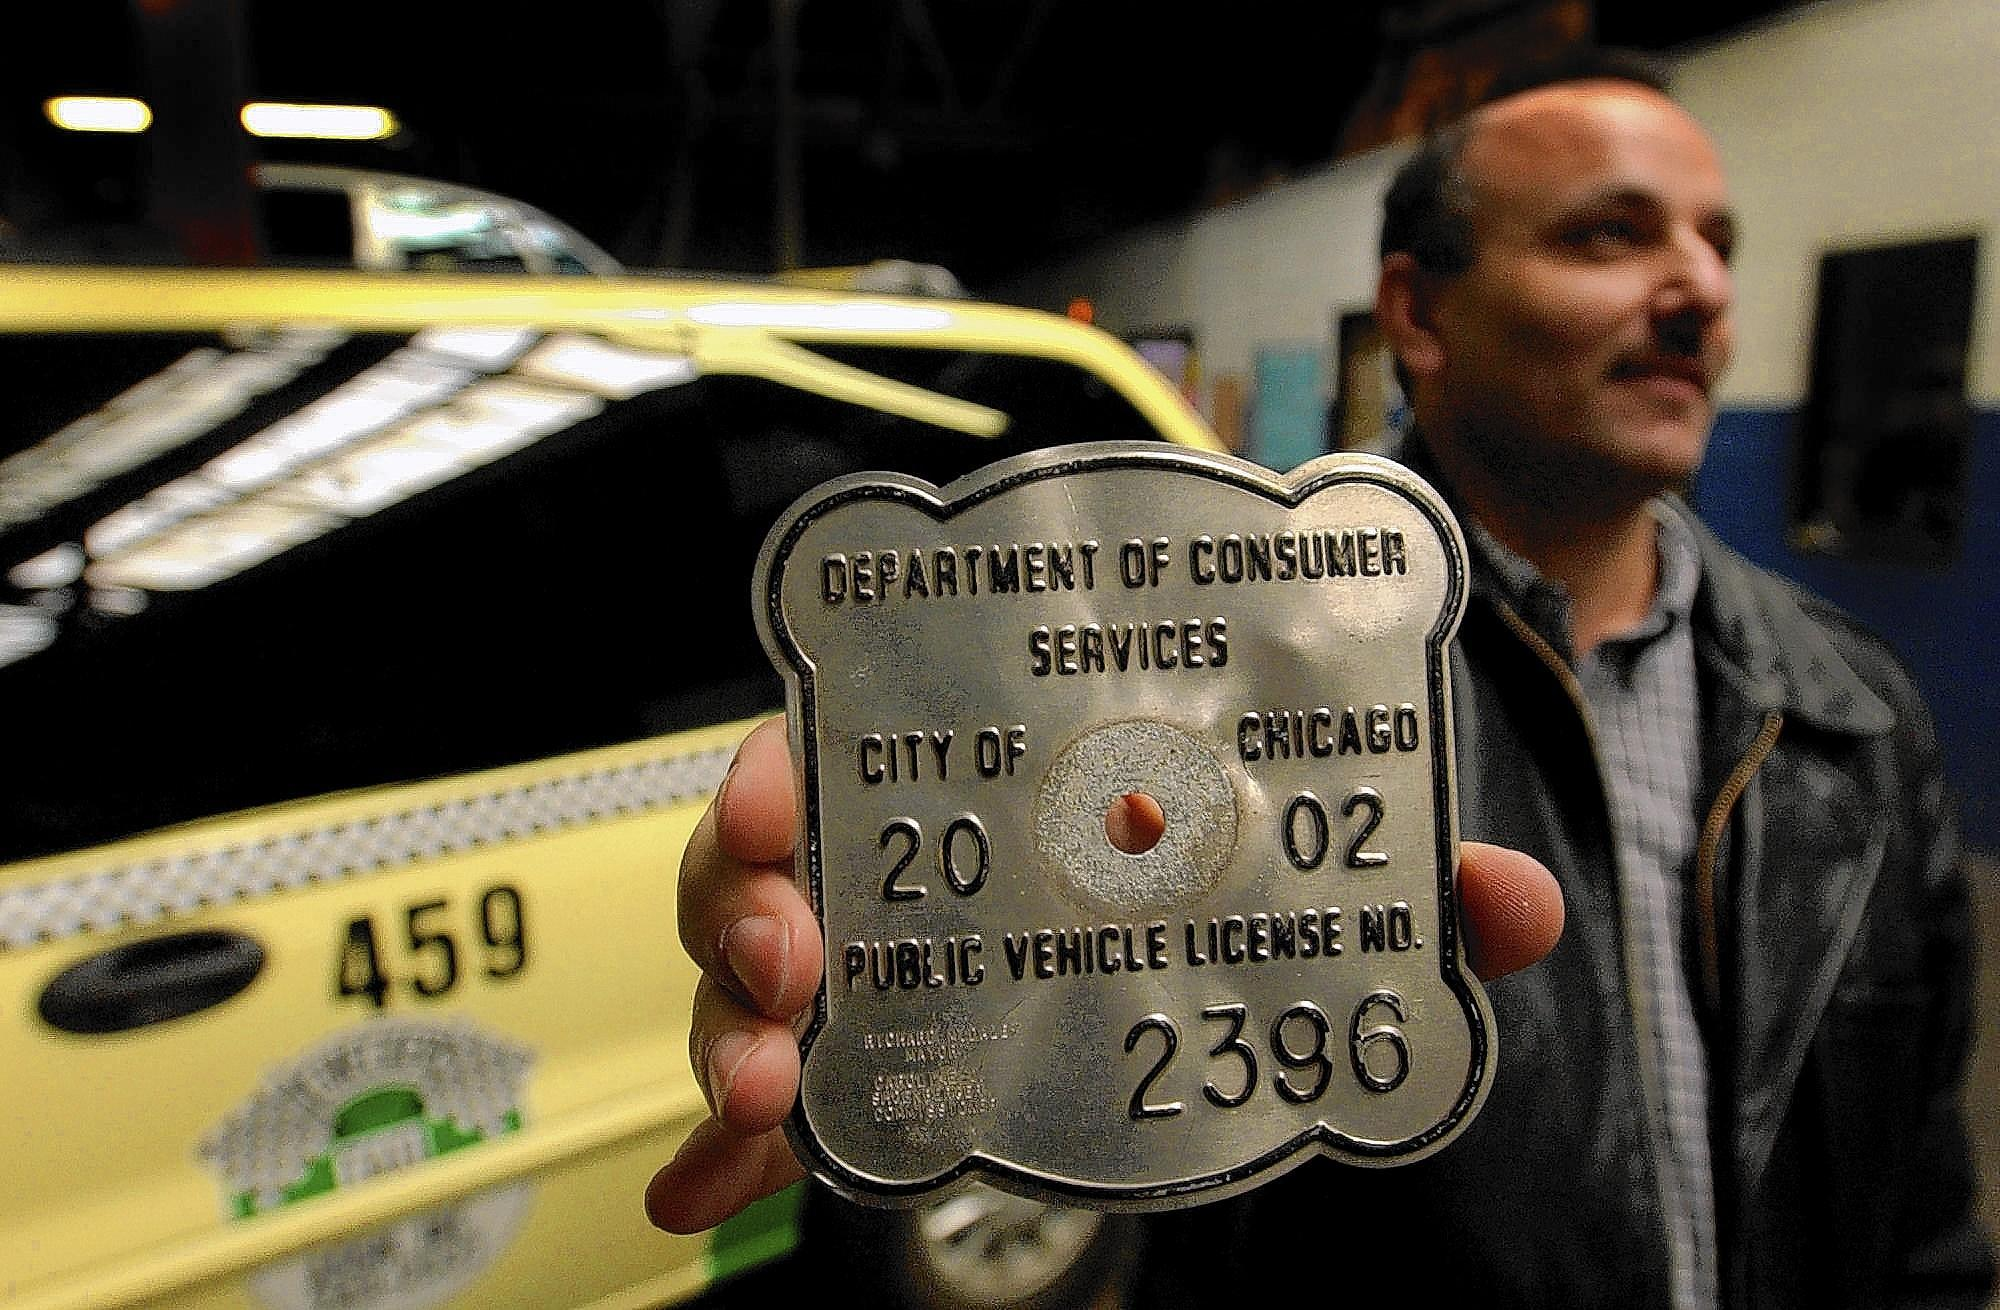 Taxi medallions in Chicago have spiked in price from less than $80,000 eight years ago to about $360,000 now. It's no wonder medallion owners want to limit competition.